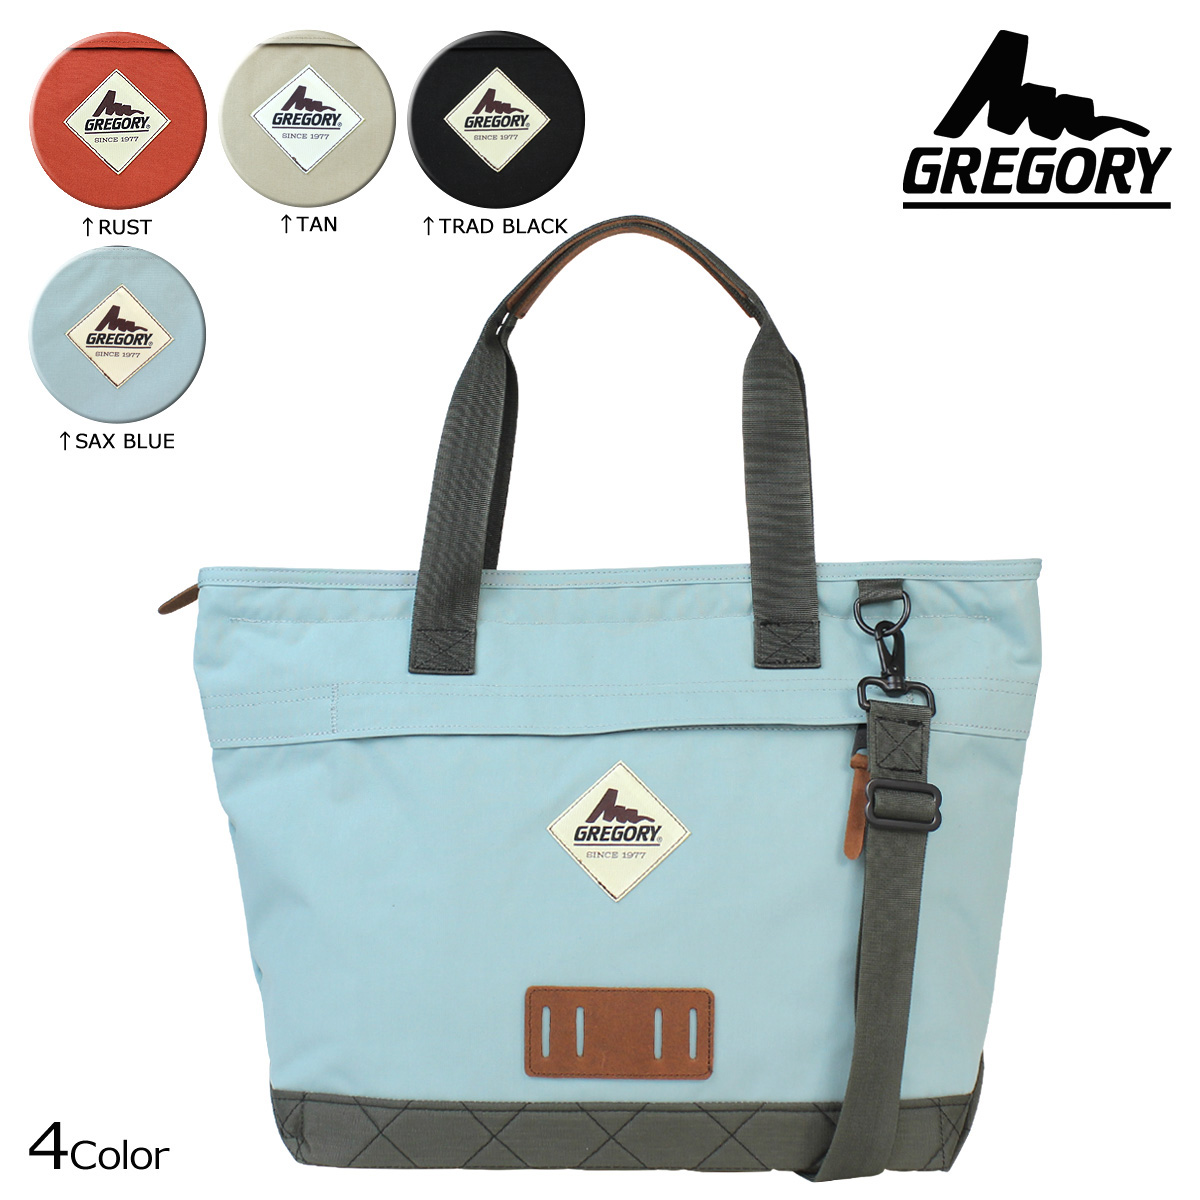 35b28b35ea «Pre-order items» «10 14 days will be in stock» Gregory GREGORY mens ladies tote  bag 2 WAY 16 4 color SUNRISE TOTE  10 14 new in stock